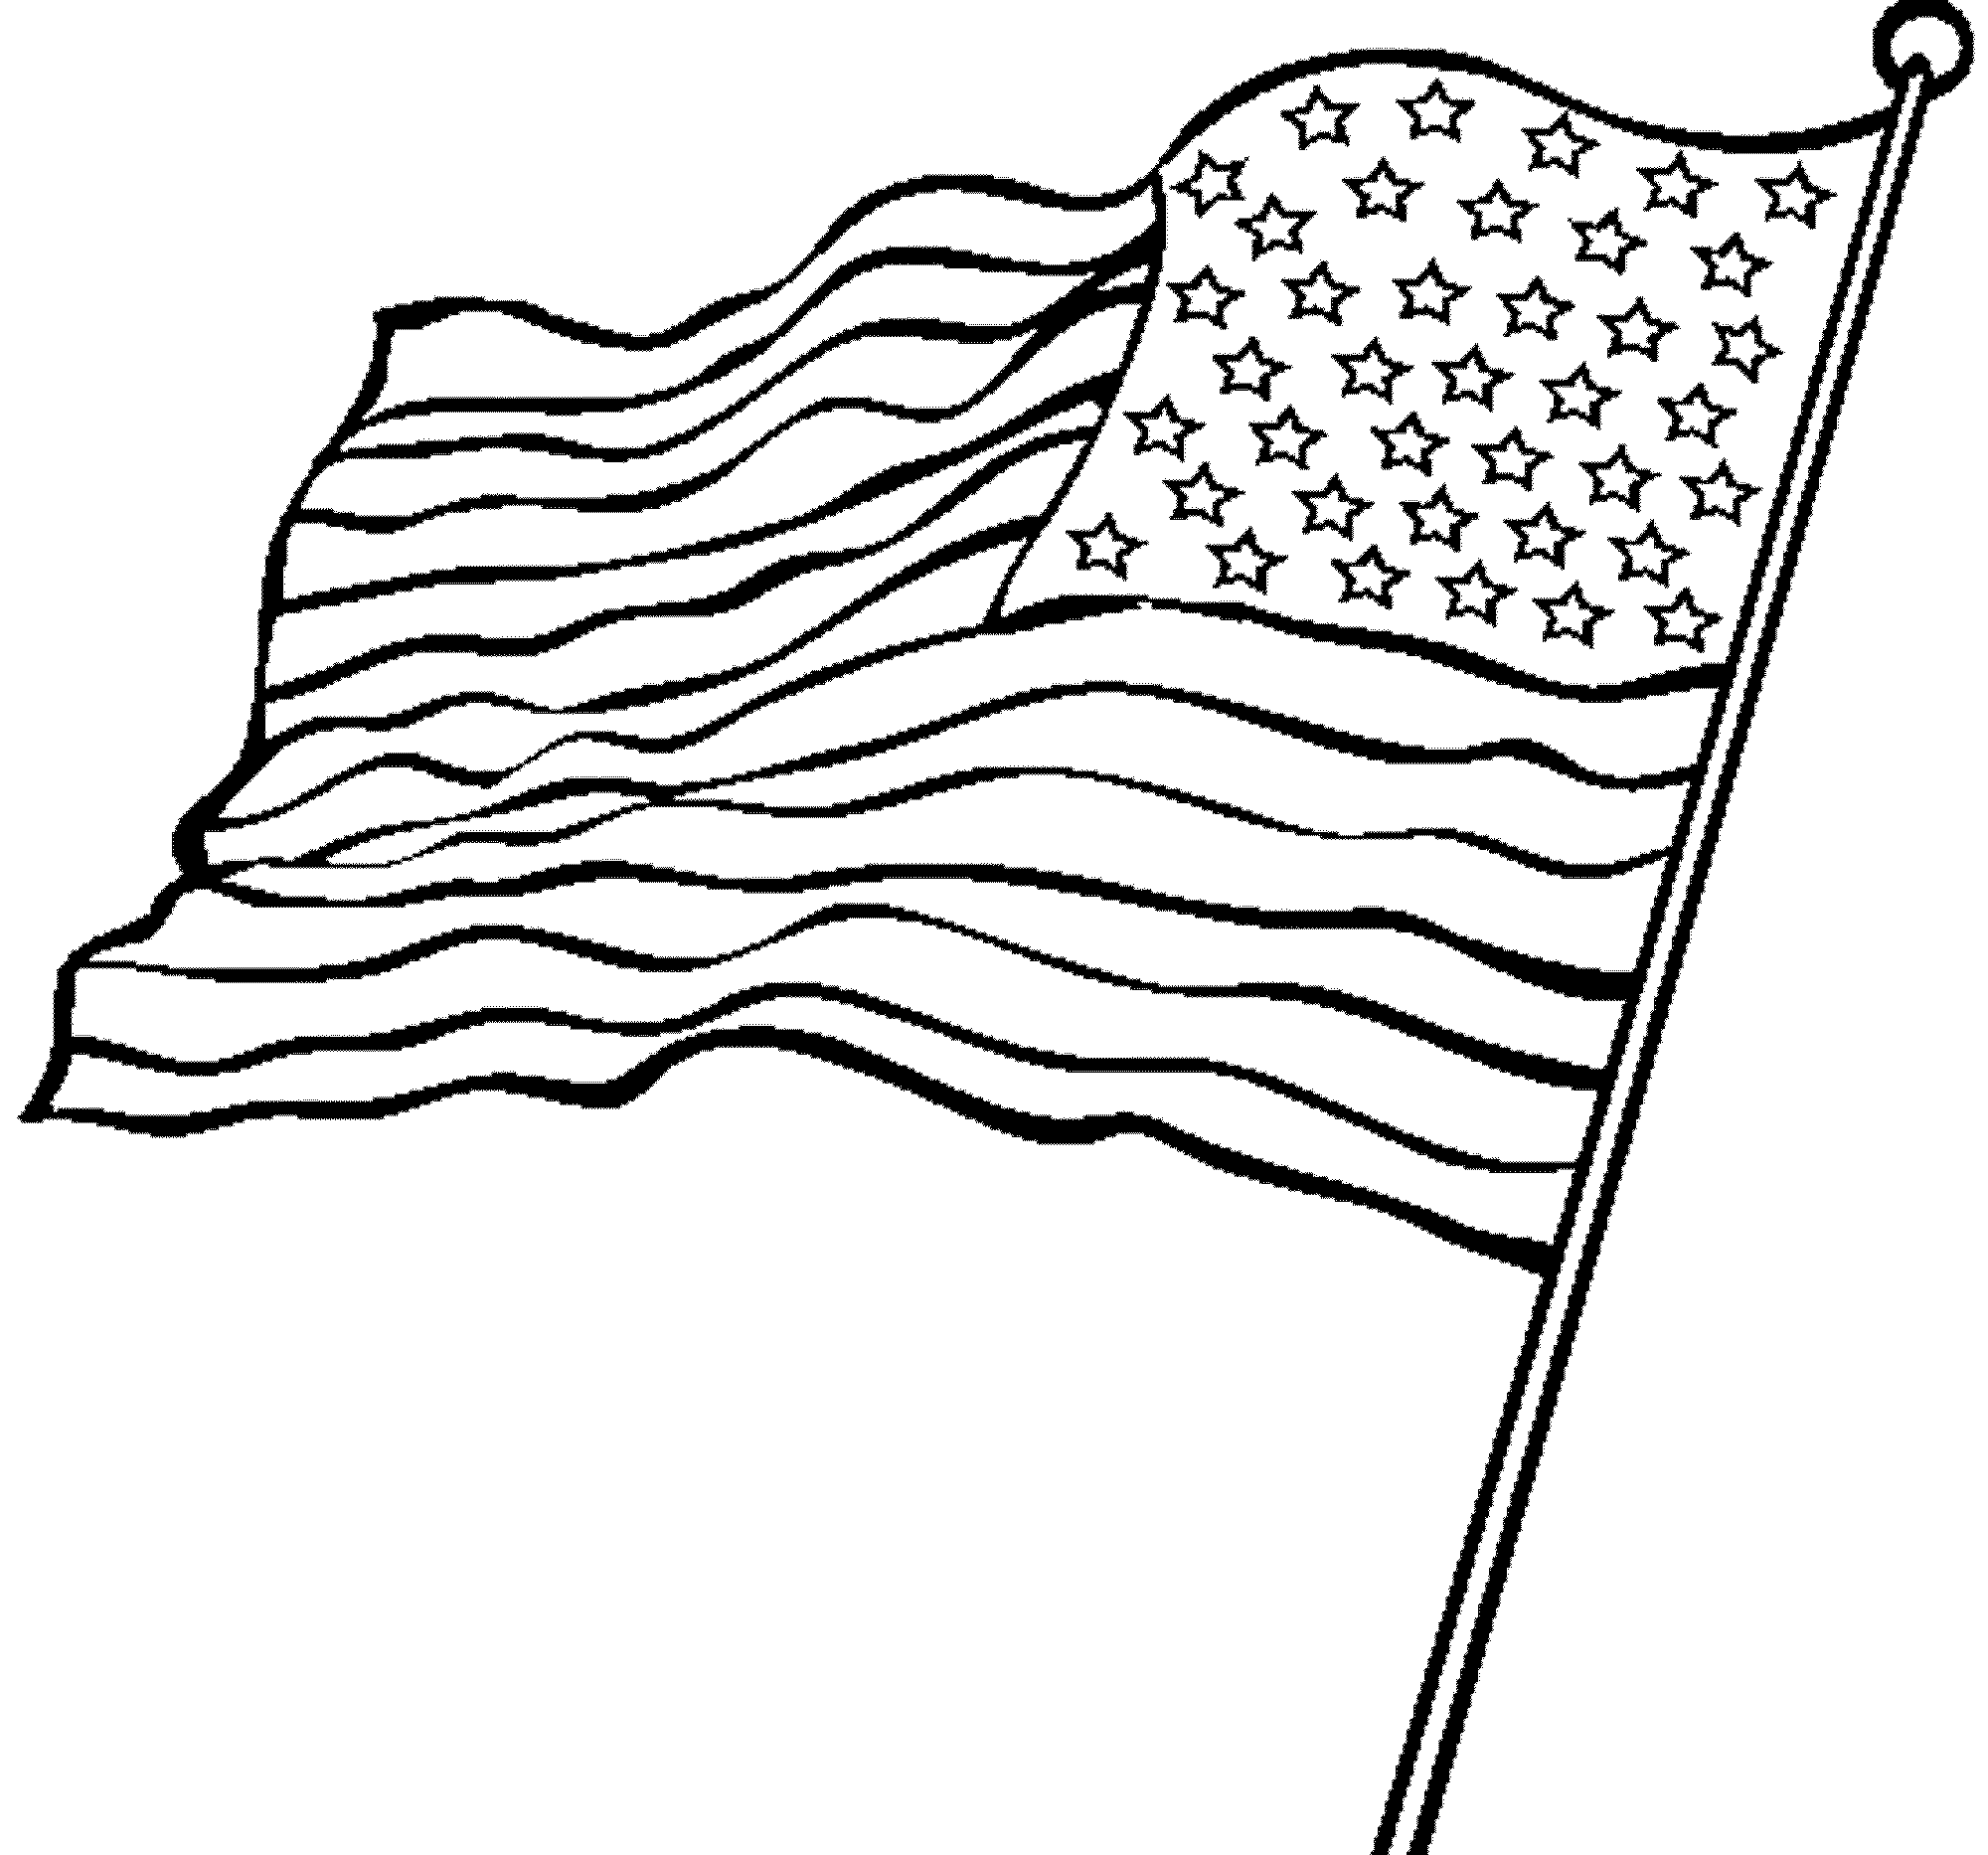 small american flag coloring page black and white american flag coloring page free page coloring small flag american